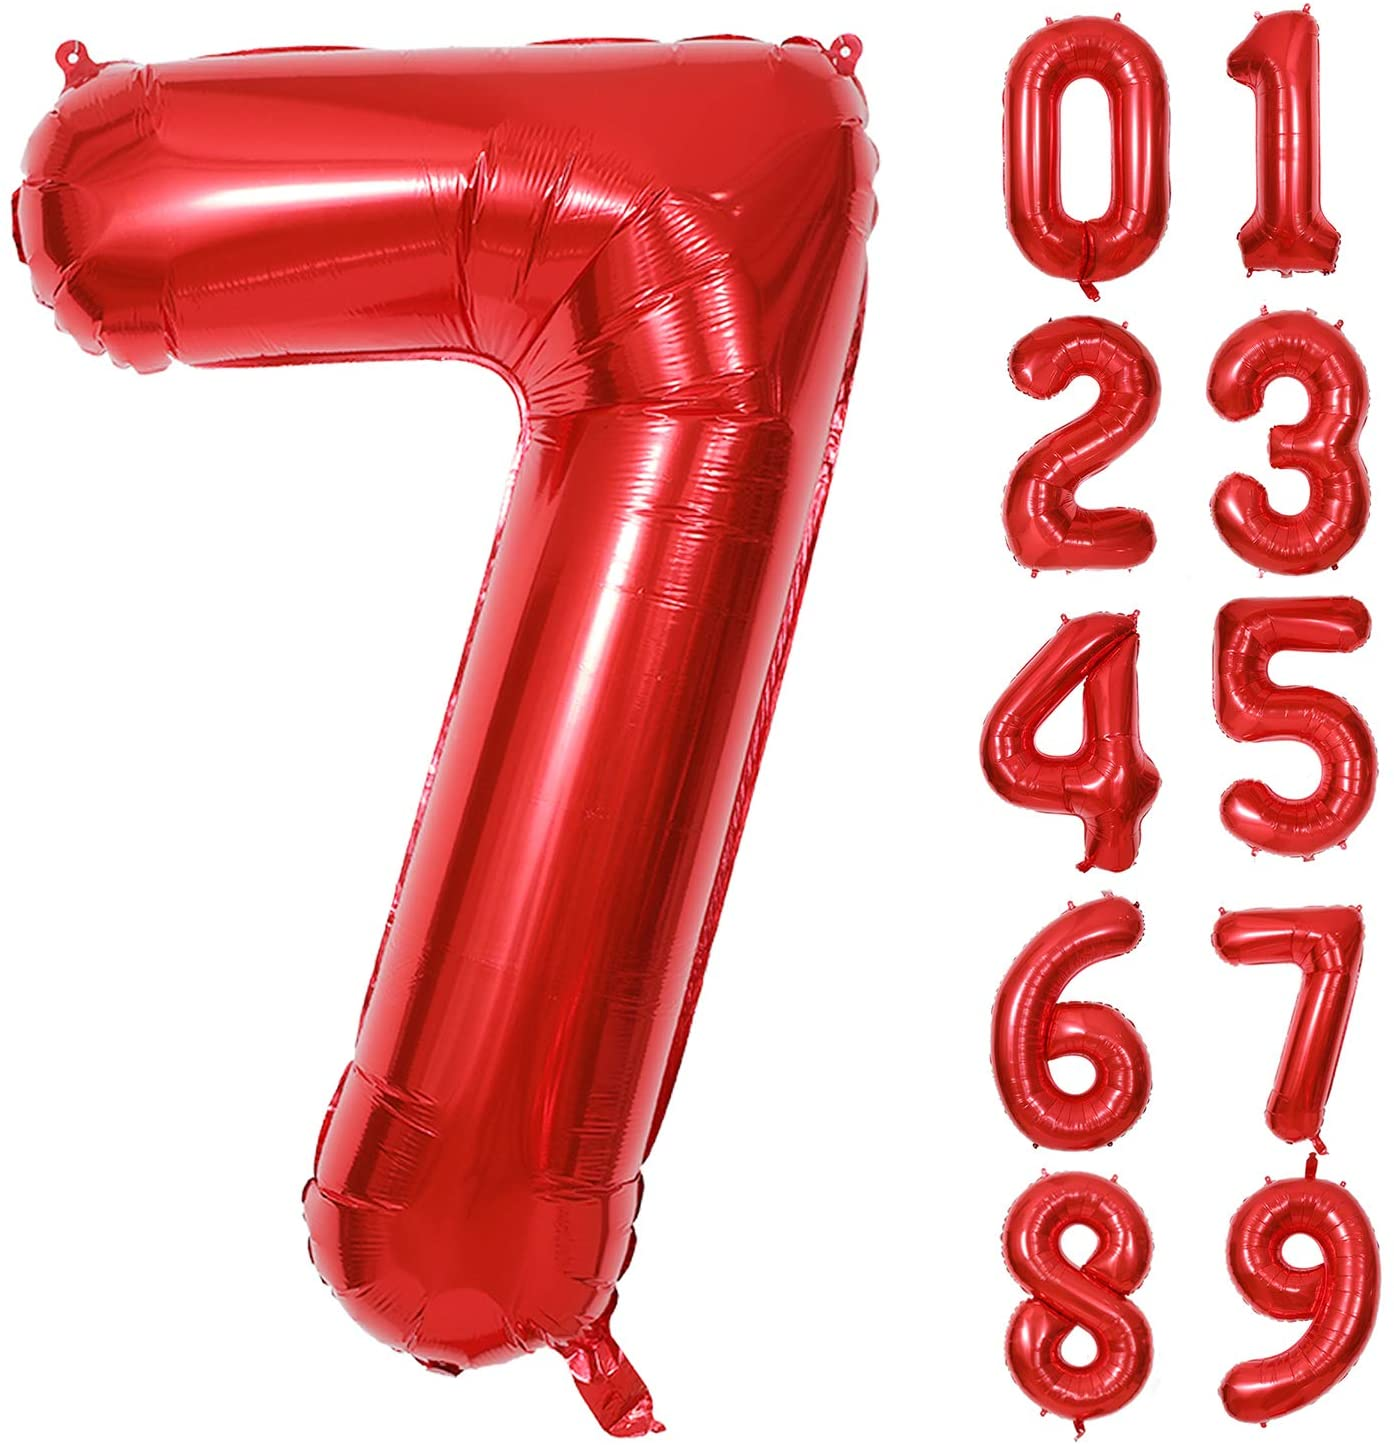 40 Inch Red Number Foil Balloons 0-9 Balloons, Foil Mylar Big Number 7 Digital Balloons for Red Birthday Party Decorations (Number 7)